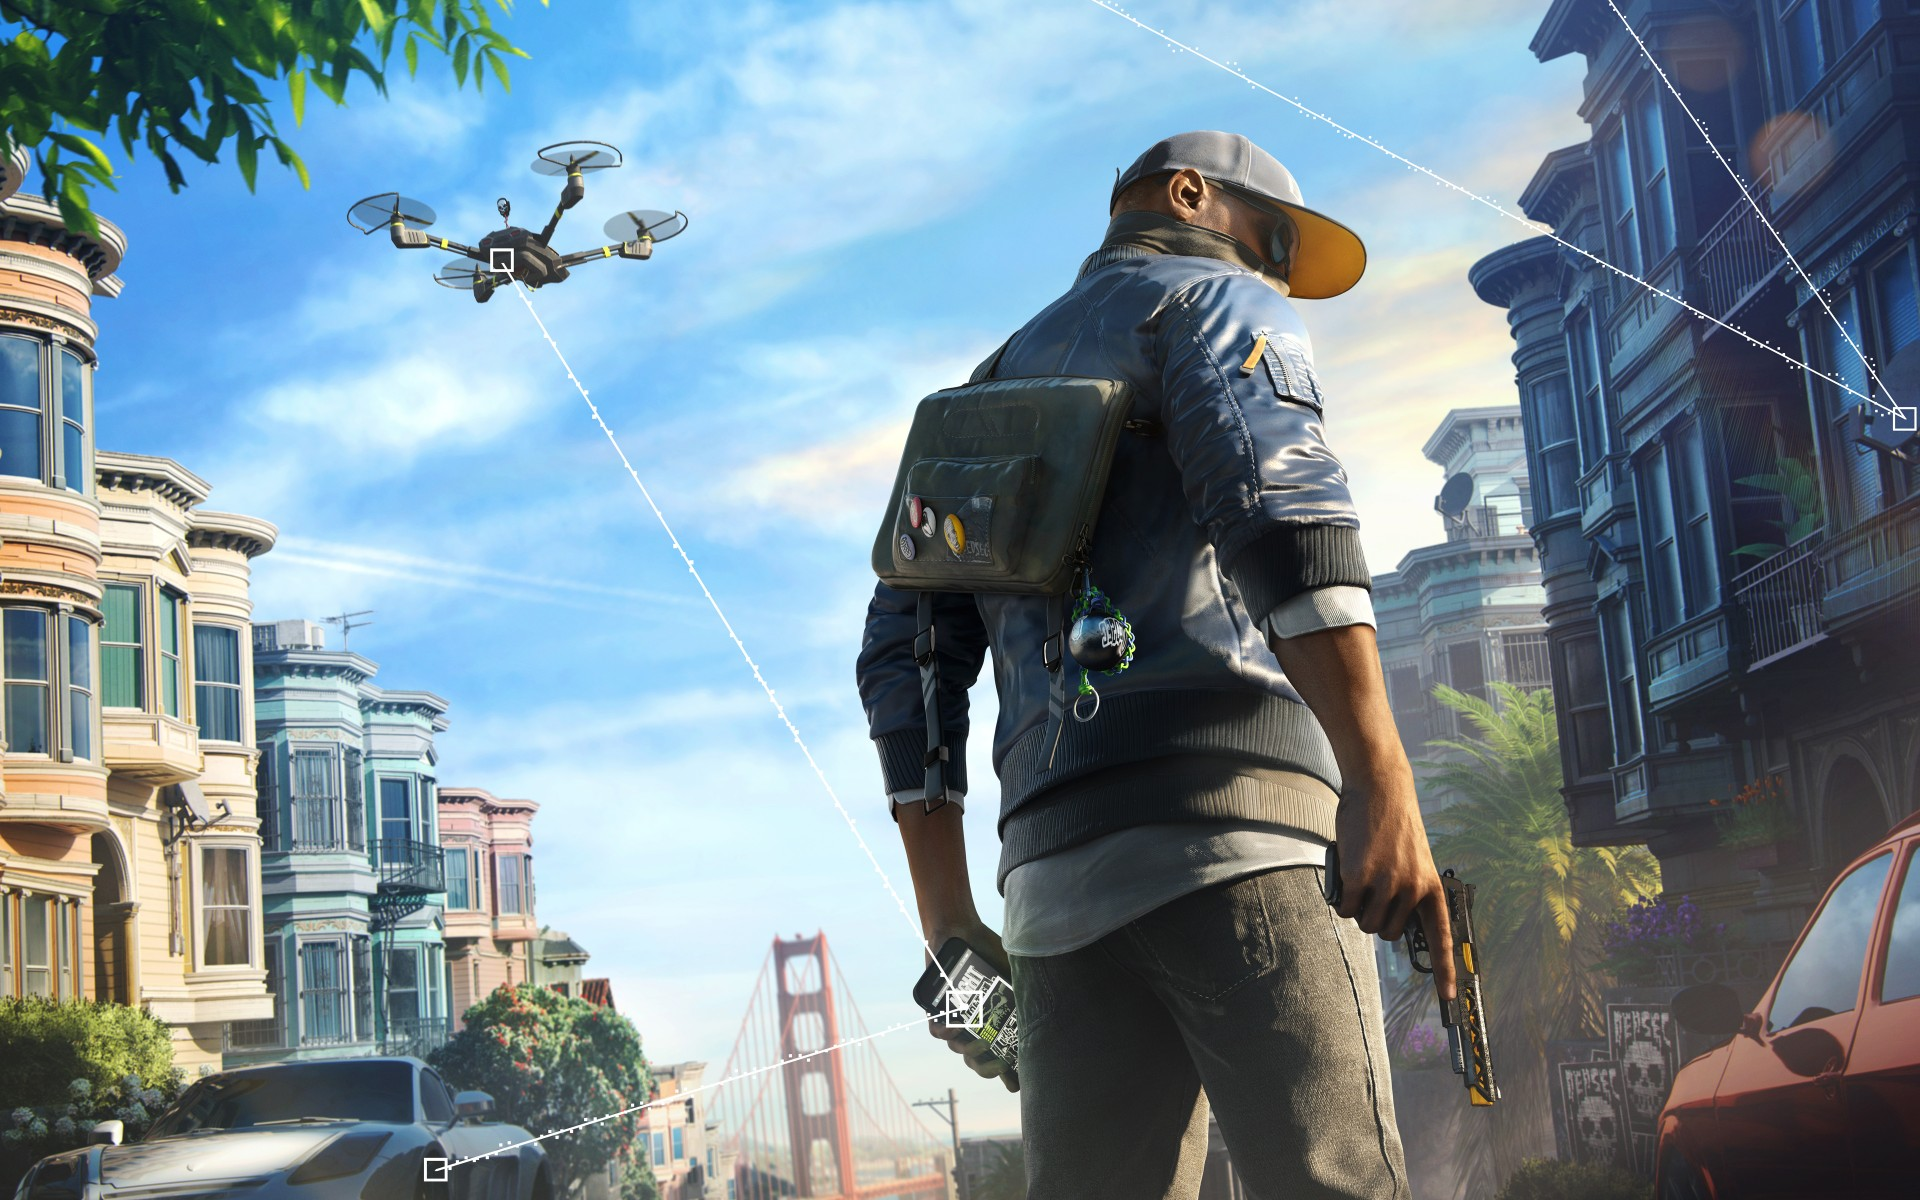 Full Hd Wallpapers For Iphone 4 Watch Dogs 2 Marcus 4k 8k Wallpapers Hd Wallpapers Id